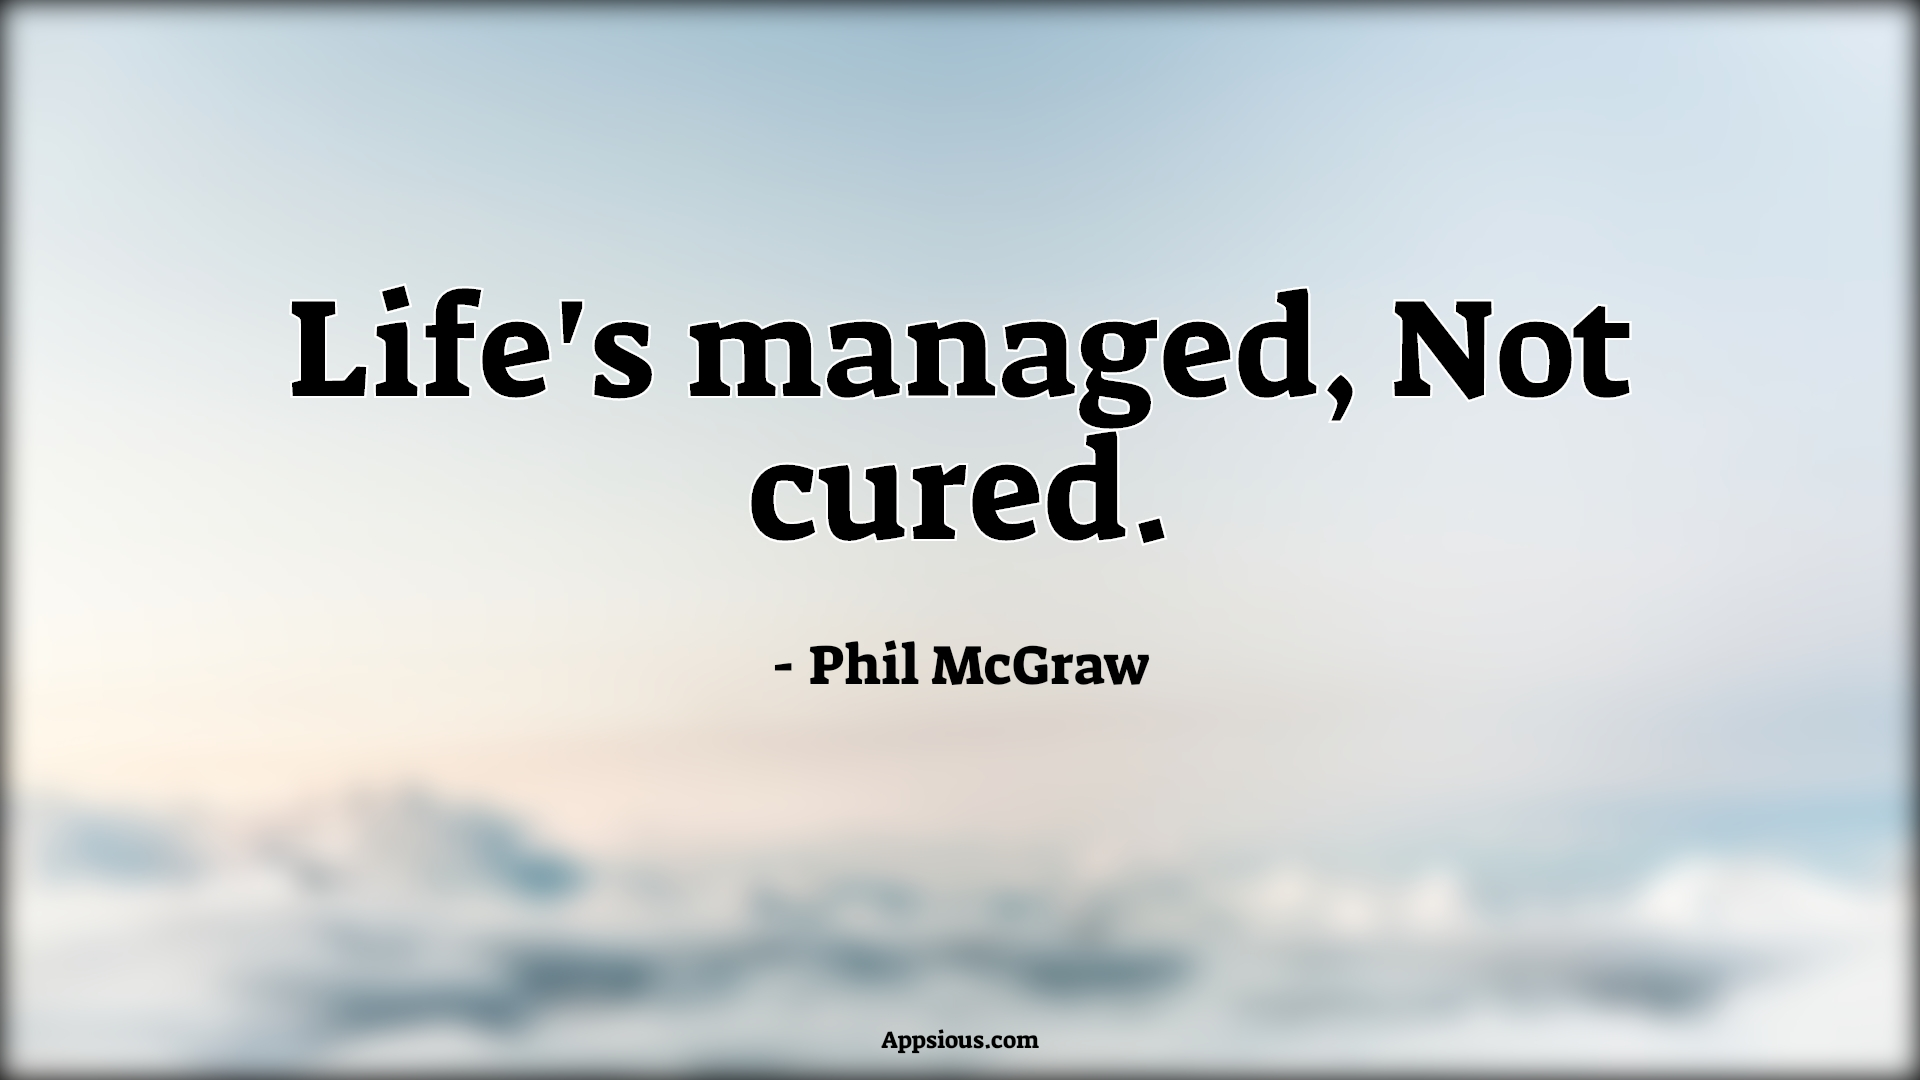 Life's managed, Not cured.